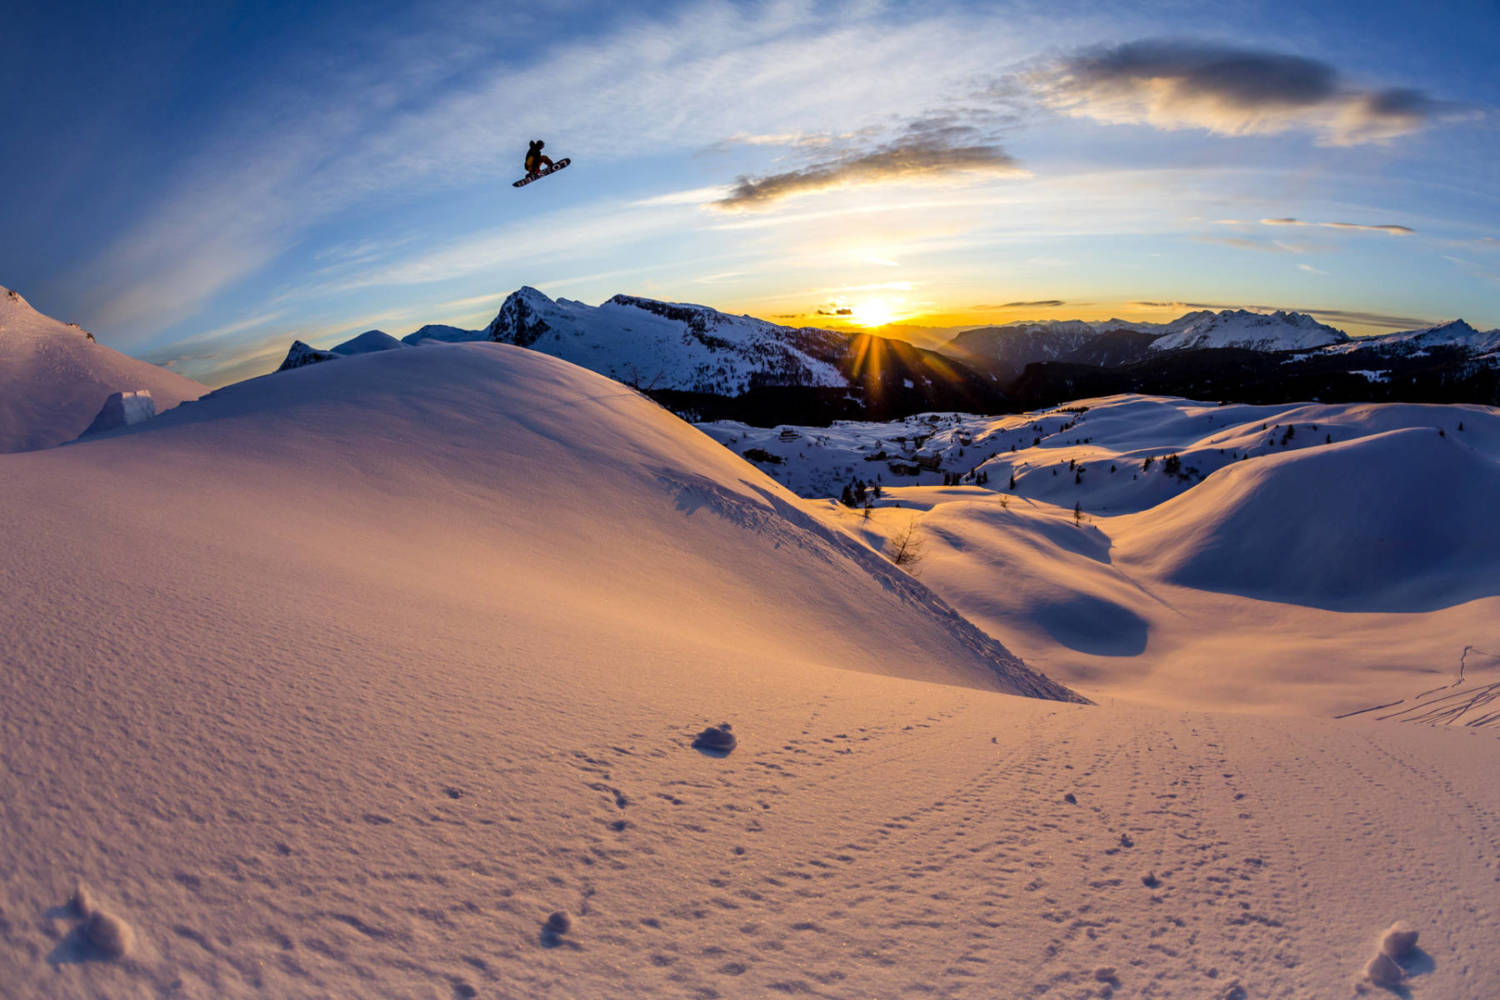 Roberto Bragotto - Fotografo Action Sports / Winter